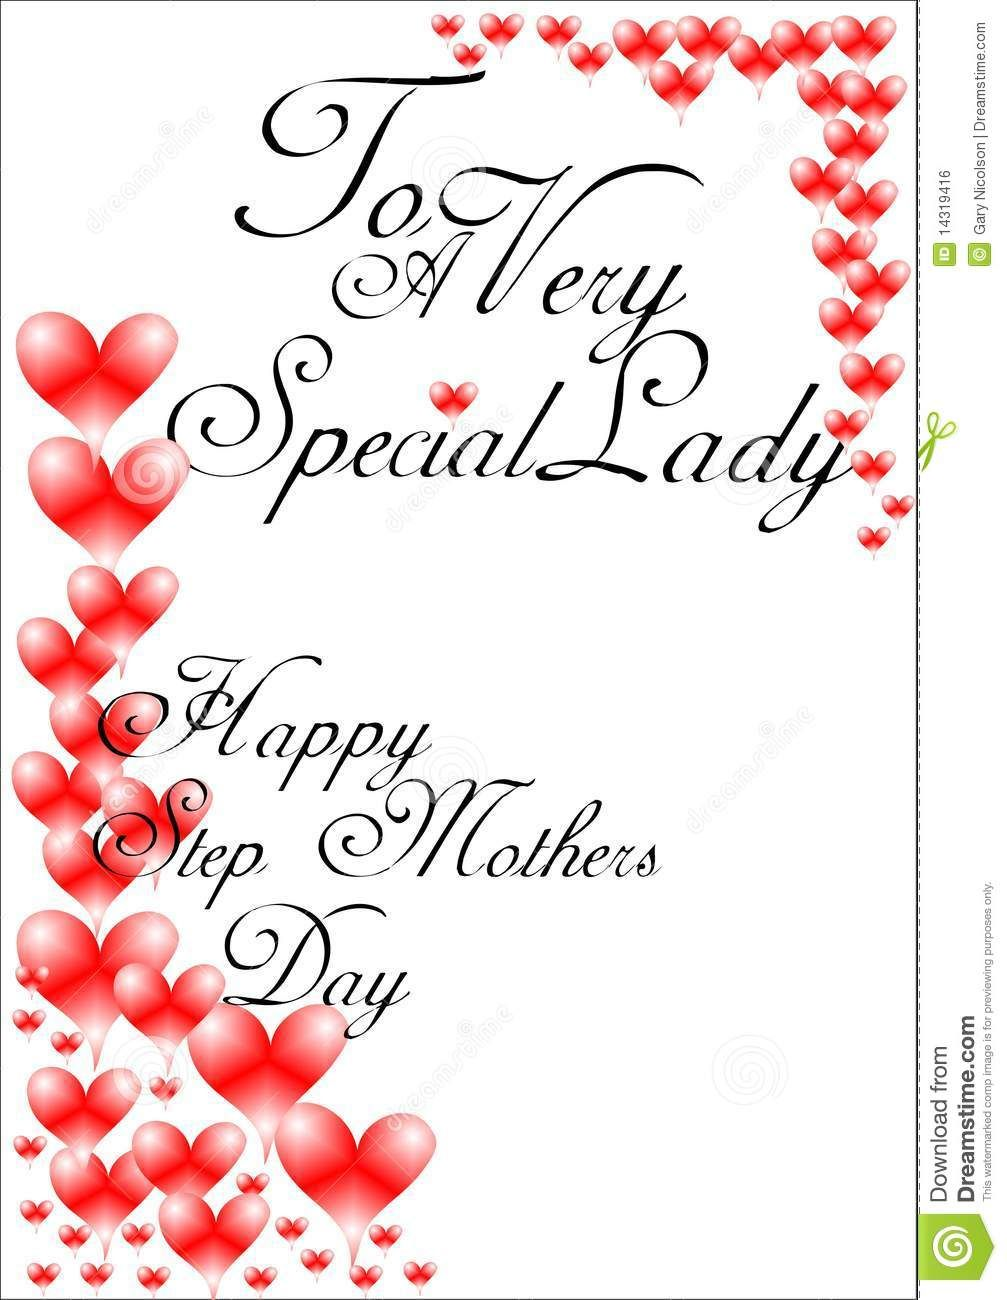 mothers day cards for stepmothers Greetings for happy